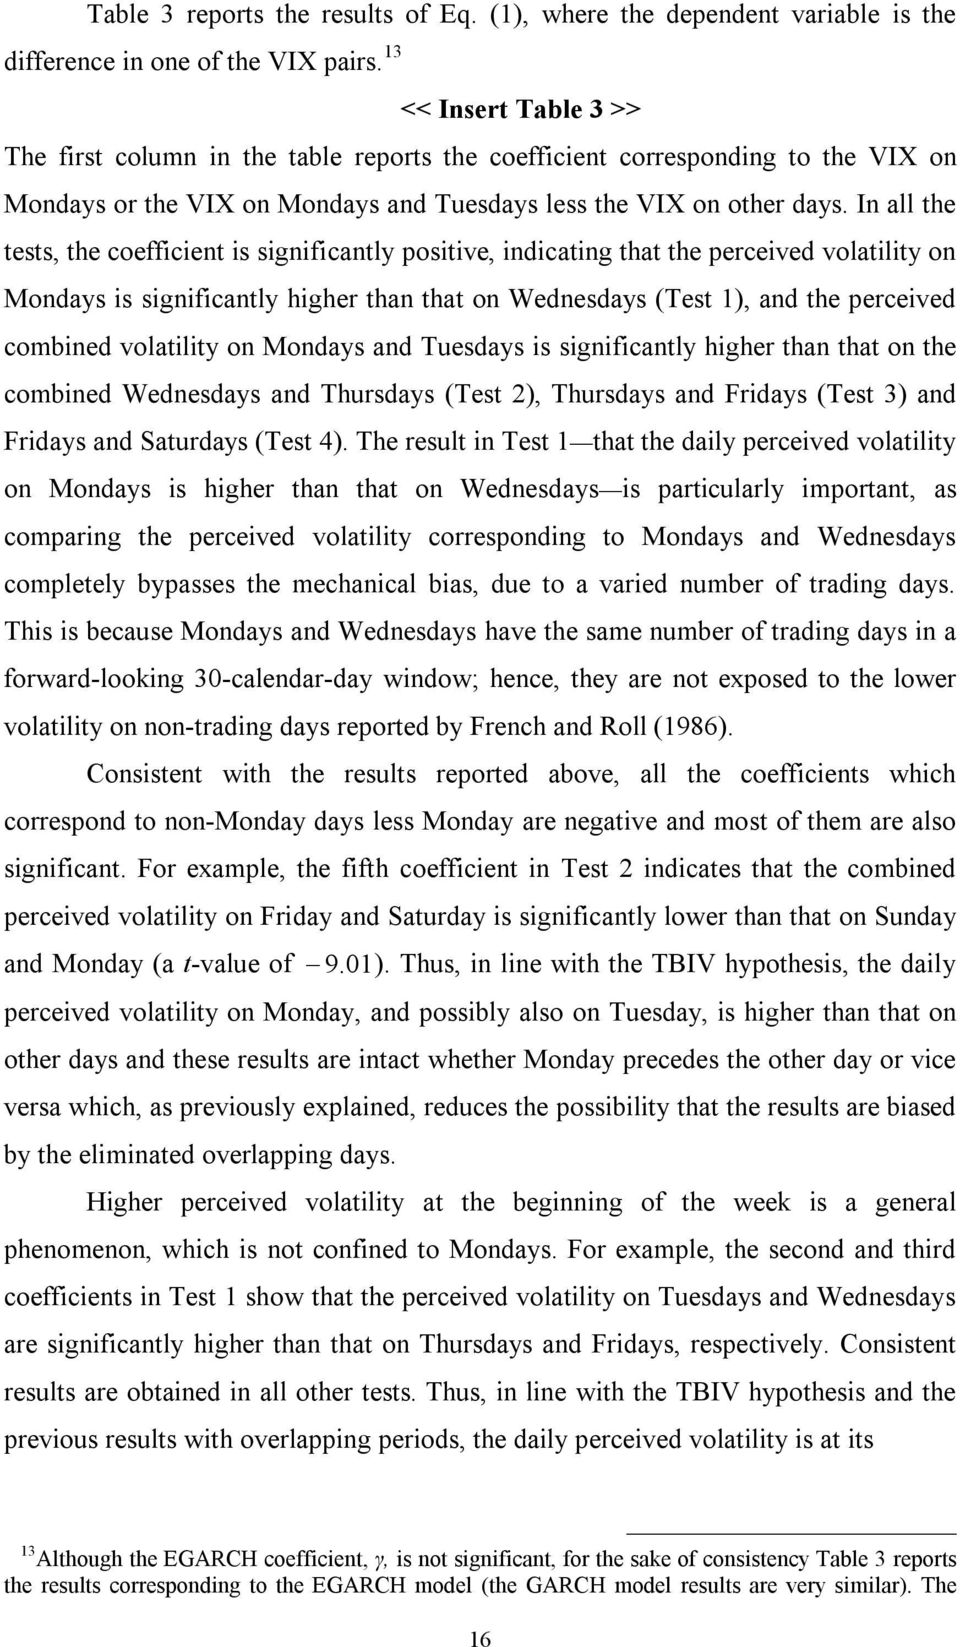 In all he ess, he coefficien is significanly posiive, indicaing ha he perceived volailiy on Mondays is significanly higher han ha on Wednesdays (Tes 1), and he perceived combined volailiy on Mondays